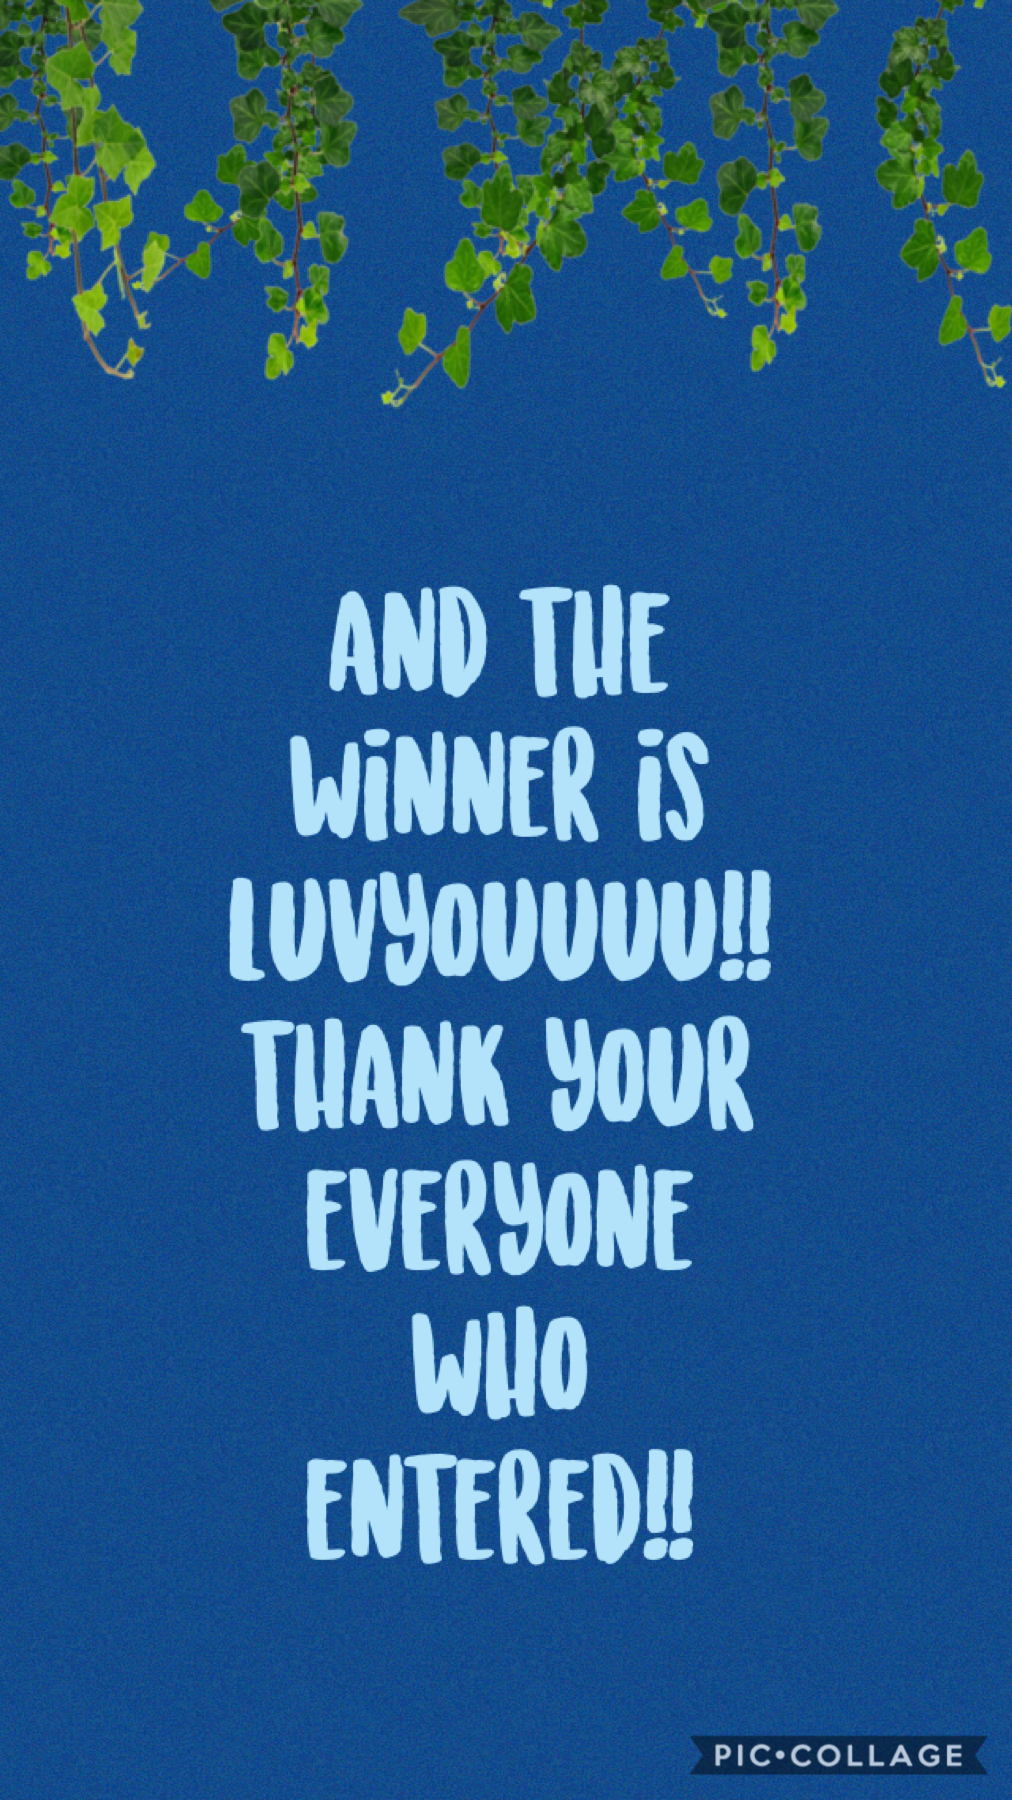 thank you for everyone who entered!!!